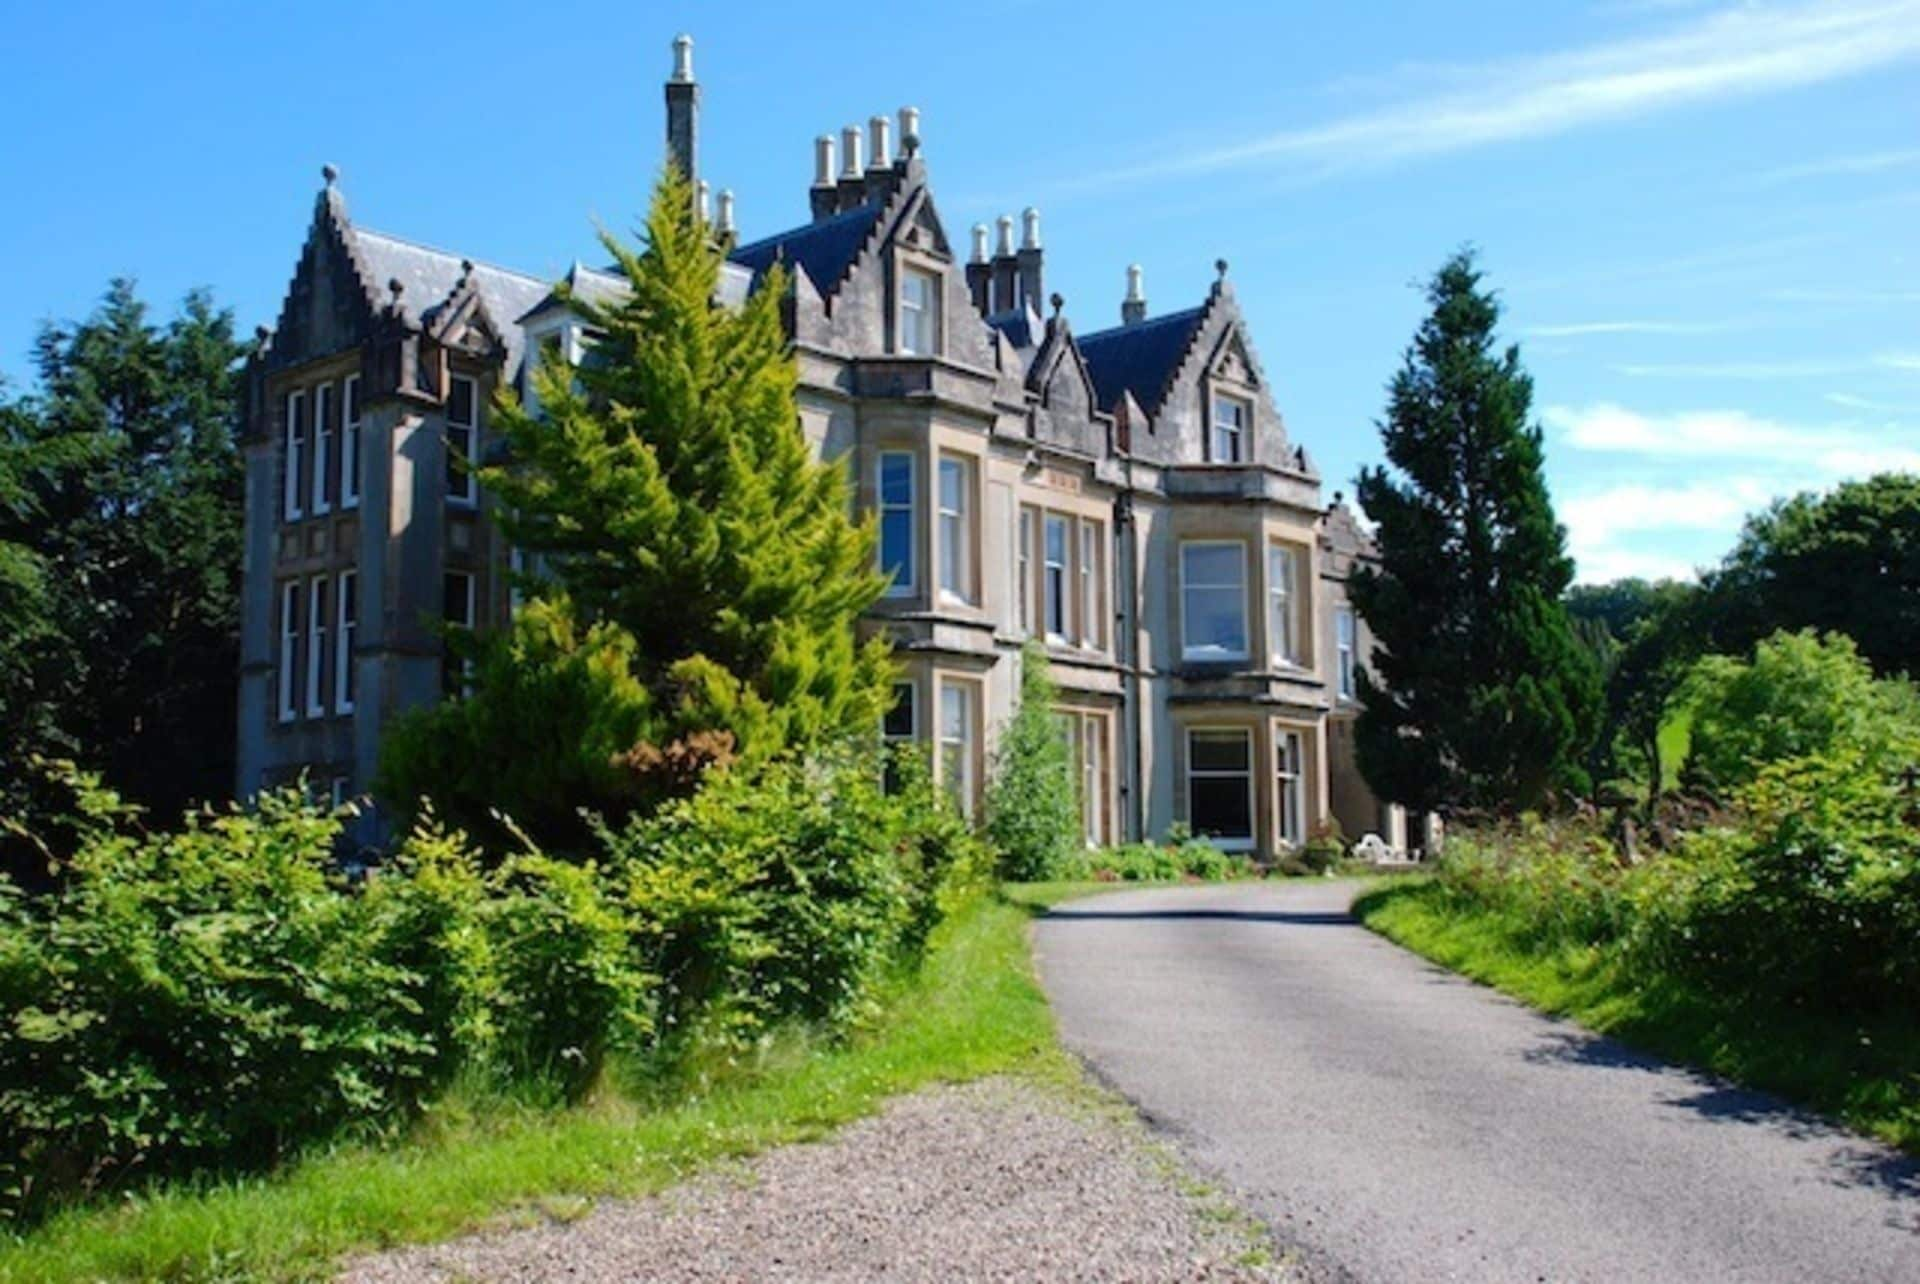 Balinakill Country House, Argyll and Bute